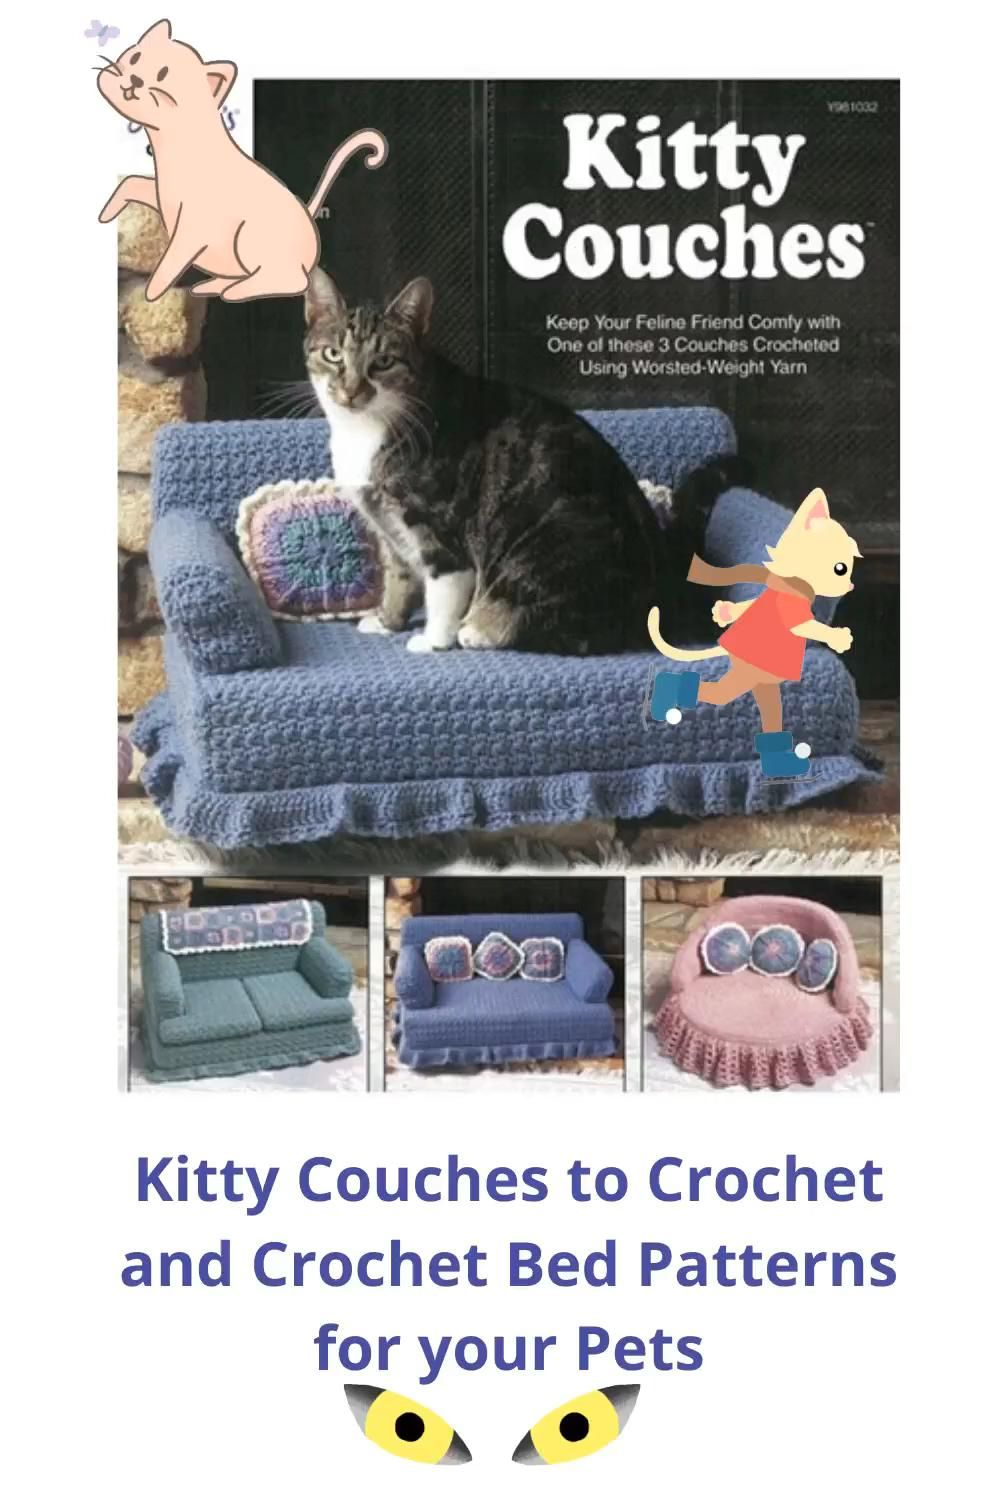 Kitty Couches And Pet Beds Patterns To Crochet Video In 2020 Crochet Patterns Pet Bed Pattern Crochet